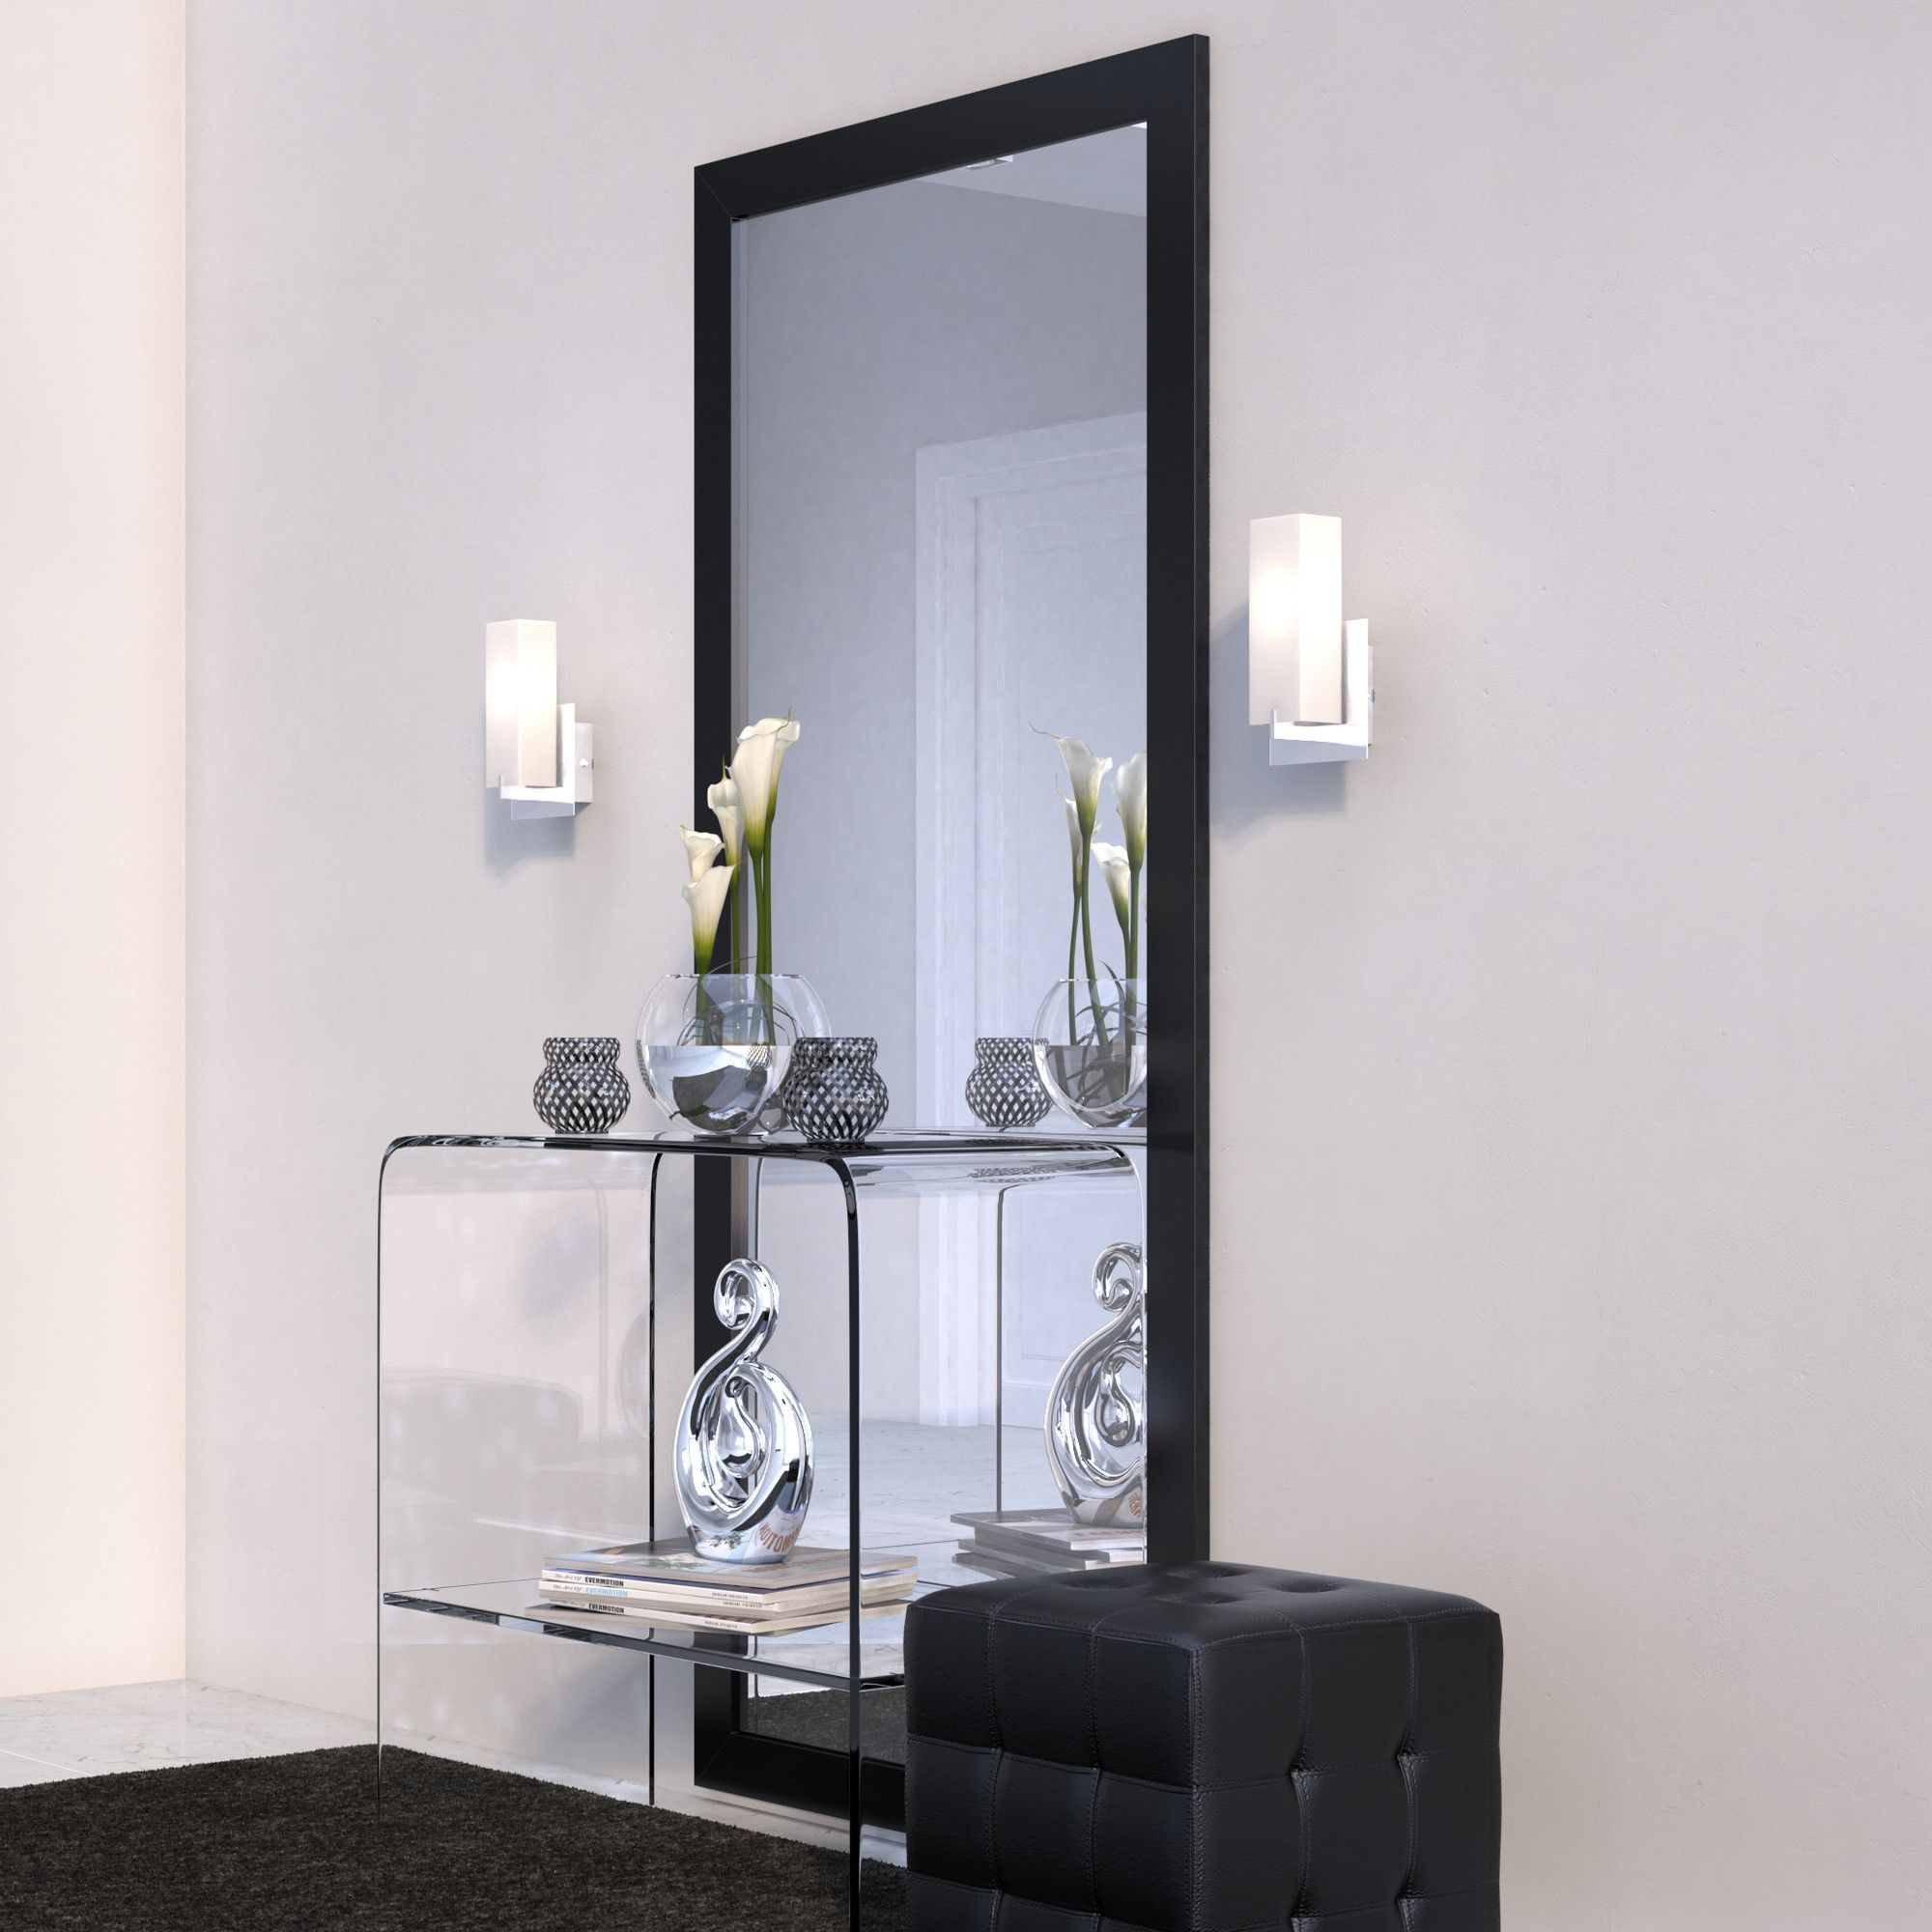 Jameson Modern & Contemporary Full Length Mirror | Products Intended For Jameson Modern & Contemporary Full Length Mirrors (Image 7 of 20)